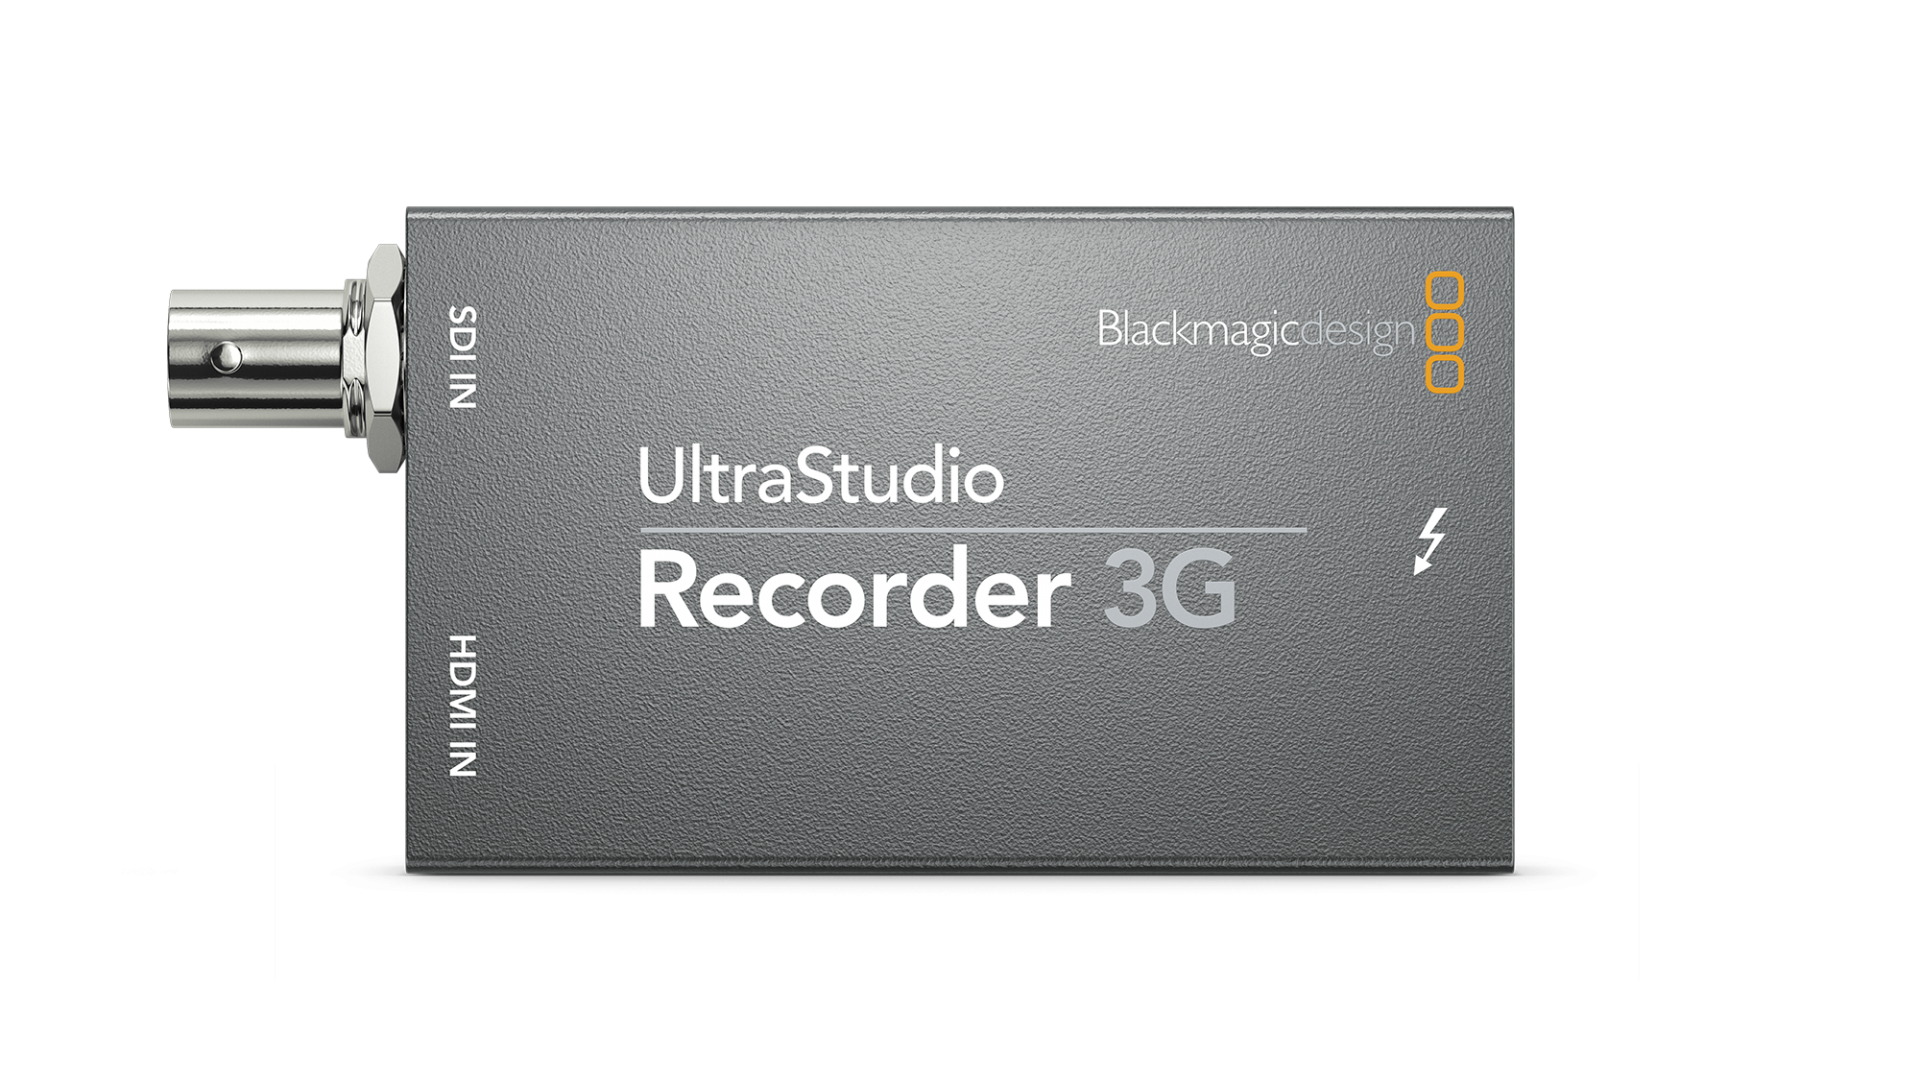 Blackmagic UltraStudio Recorder 3G - Novo